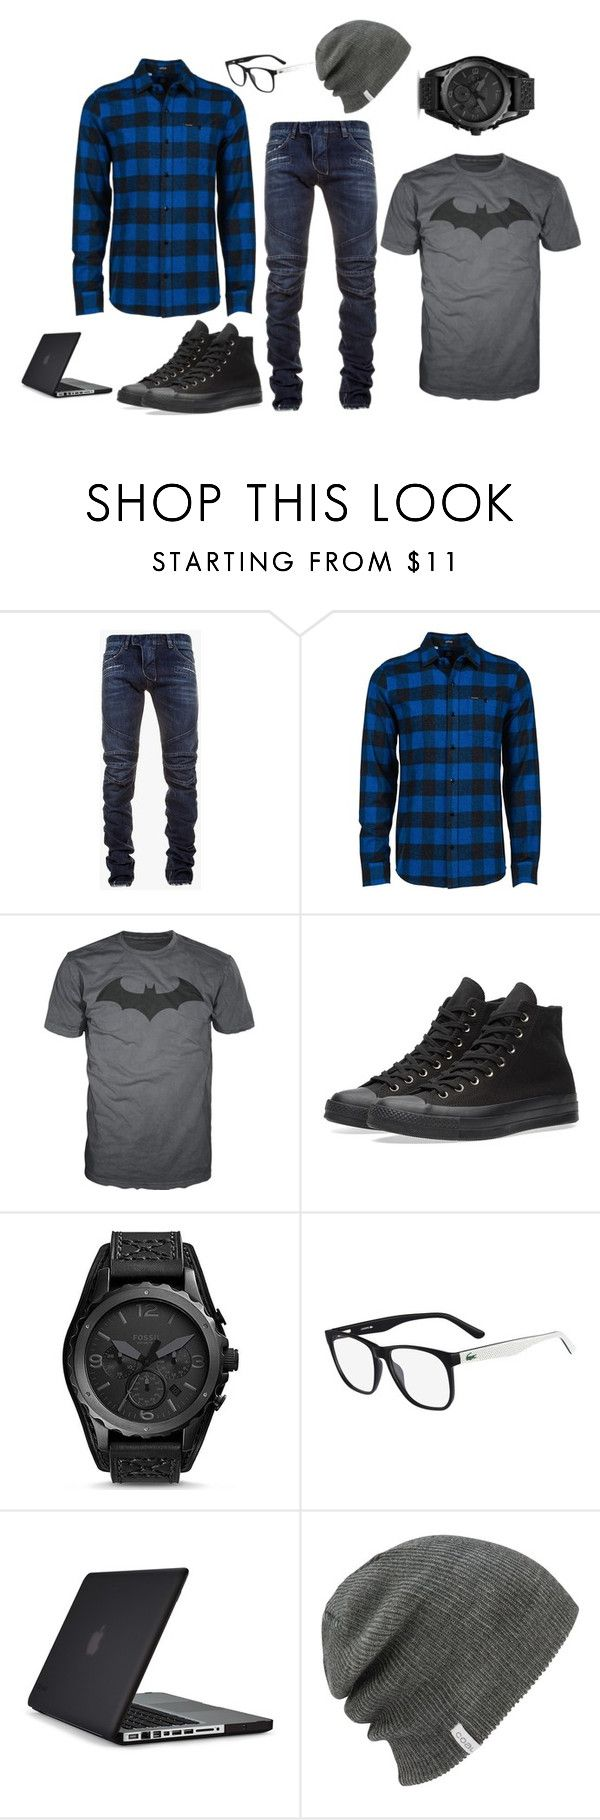 """""""An outfit for my man"""" by khopejohnston ❤ liked on Polyvore featuring Balmain, Volcom, Converse, FOSSIL, Lacoste, Speck, men's fashion and menswear"""